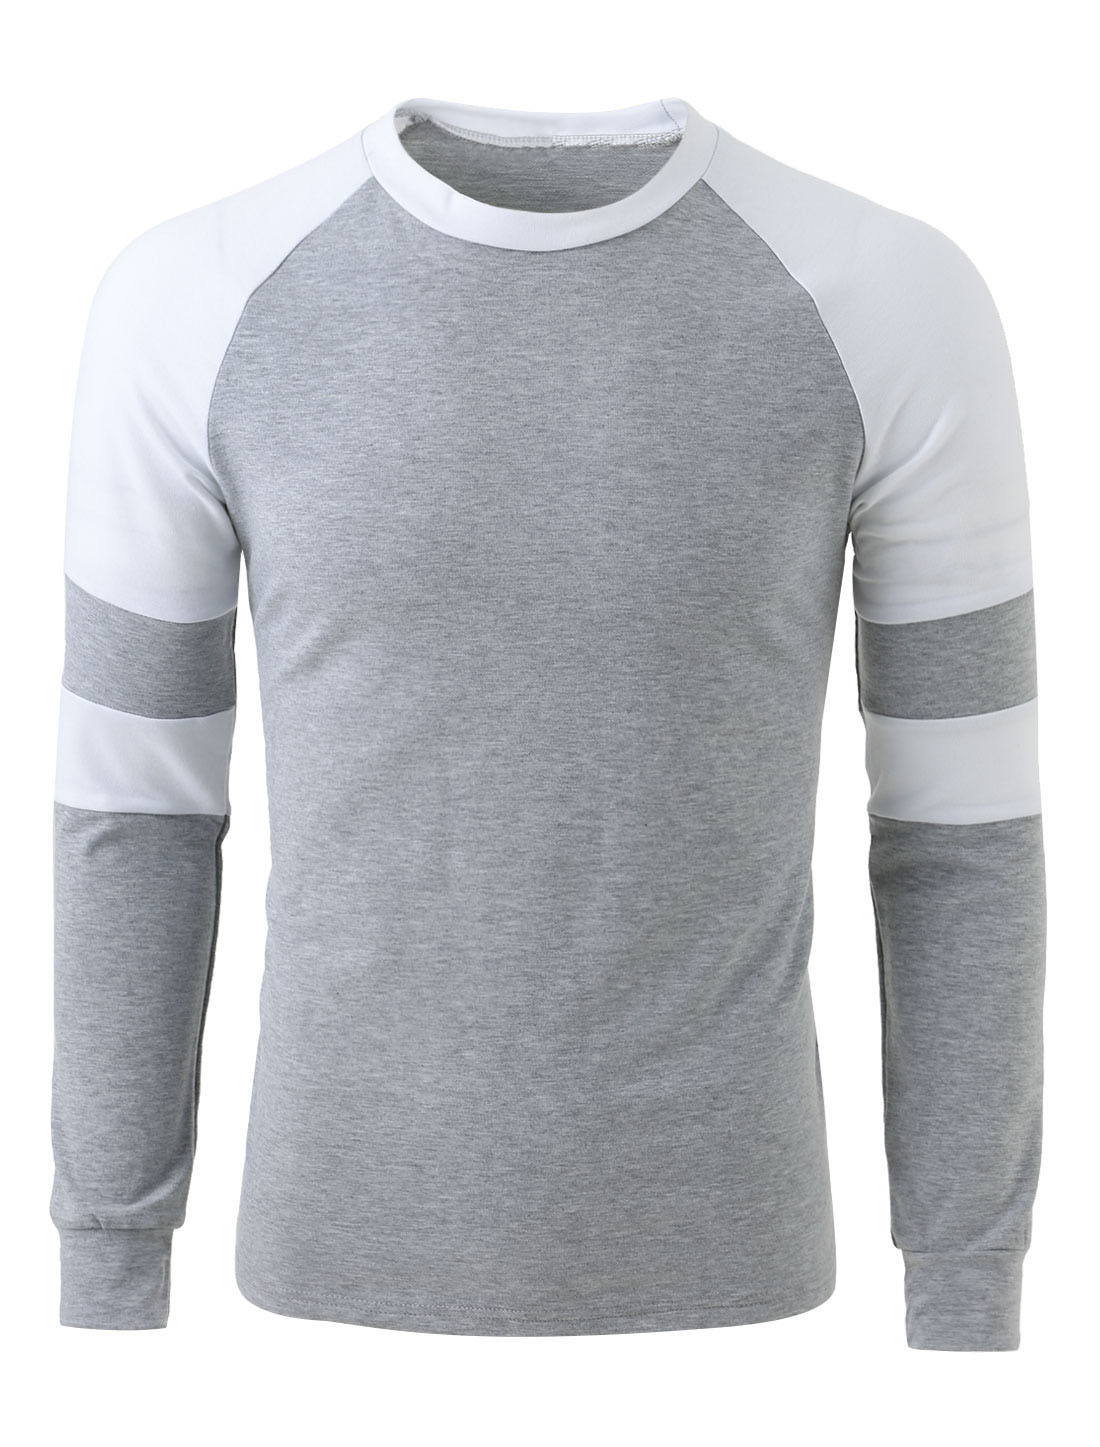 Men Crew Neck Contrast Color Slim Fit T-Shirt Light Gray M